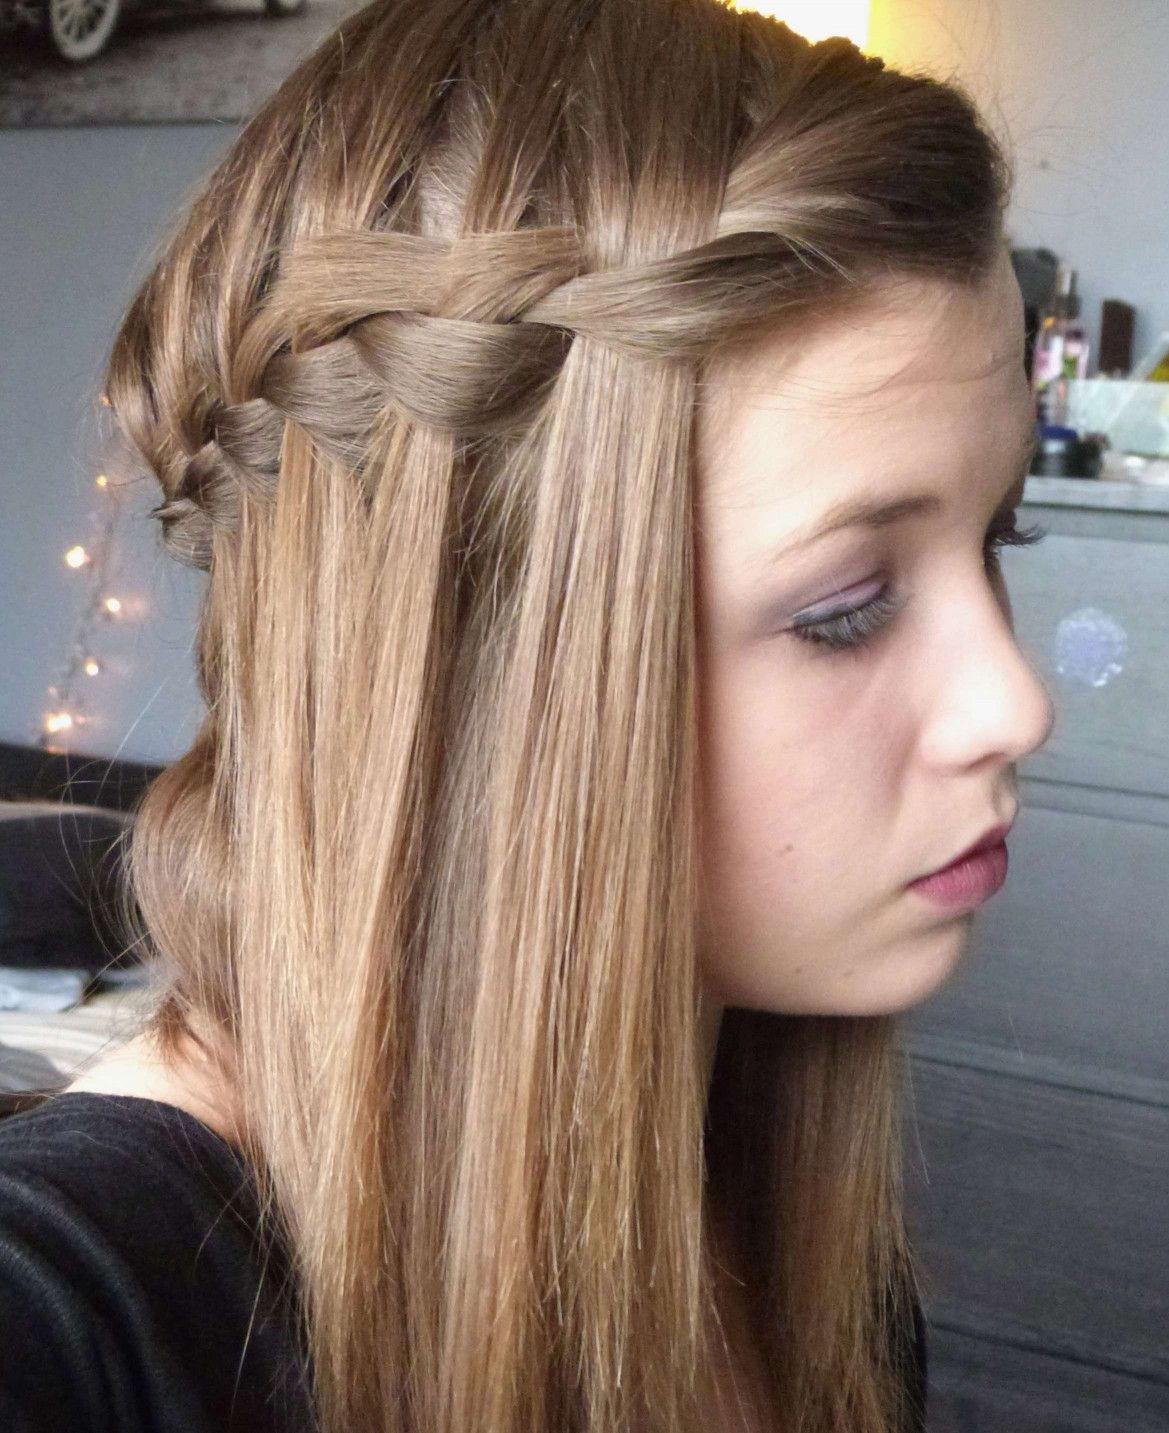 Coiffure Noel Superbe Frais Coiffure Cheveux Mi Long Tresse Braids For Long Hair Hairstyle Cool Hairstyles